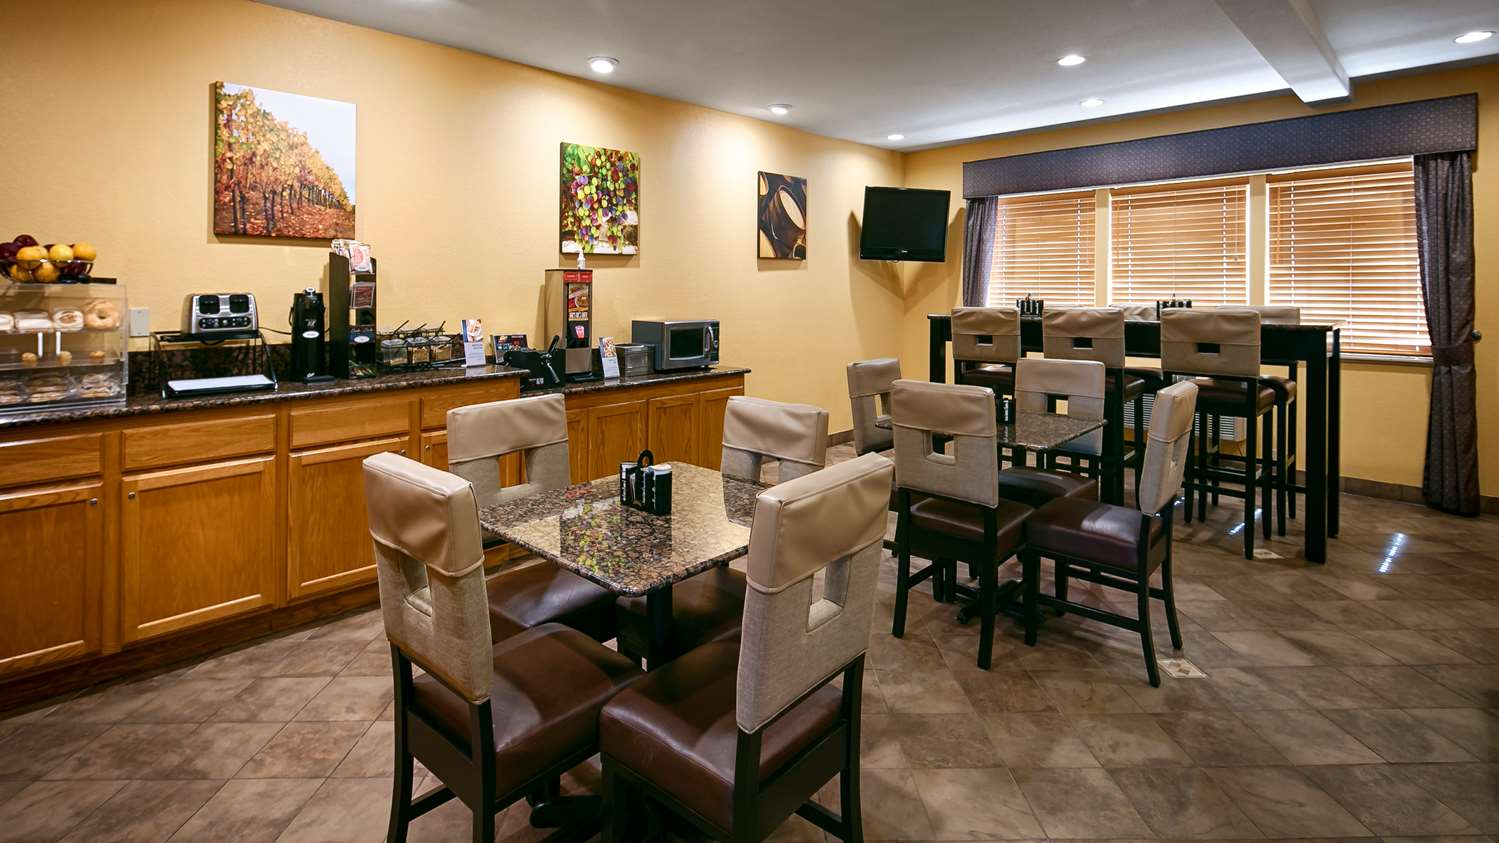 Restaurant - Best Western Dallas Inn & Suites